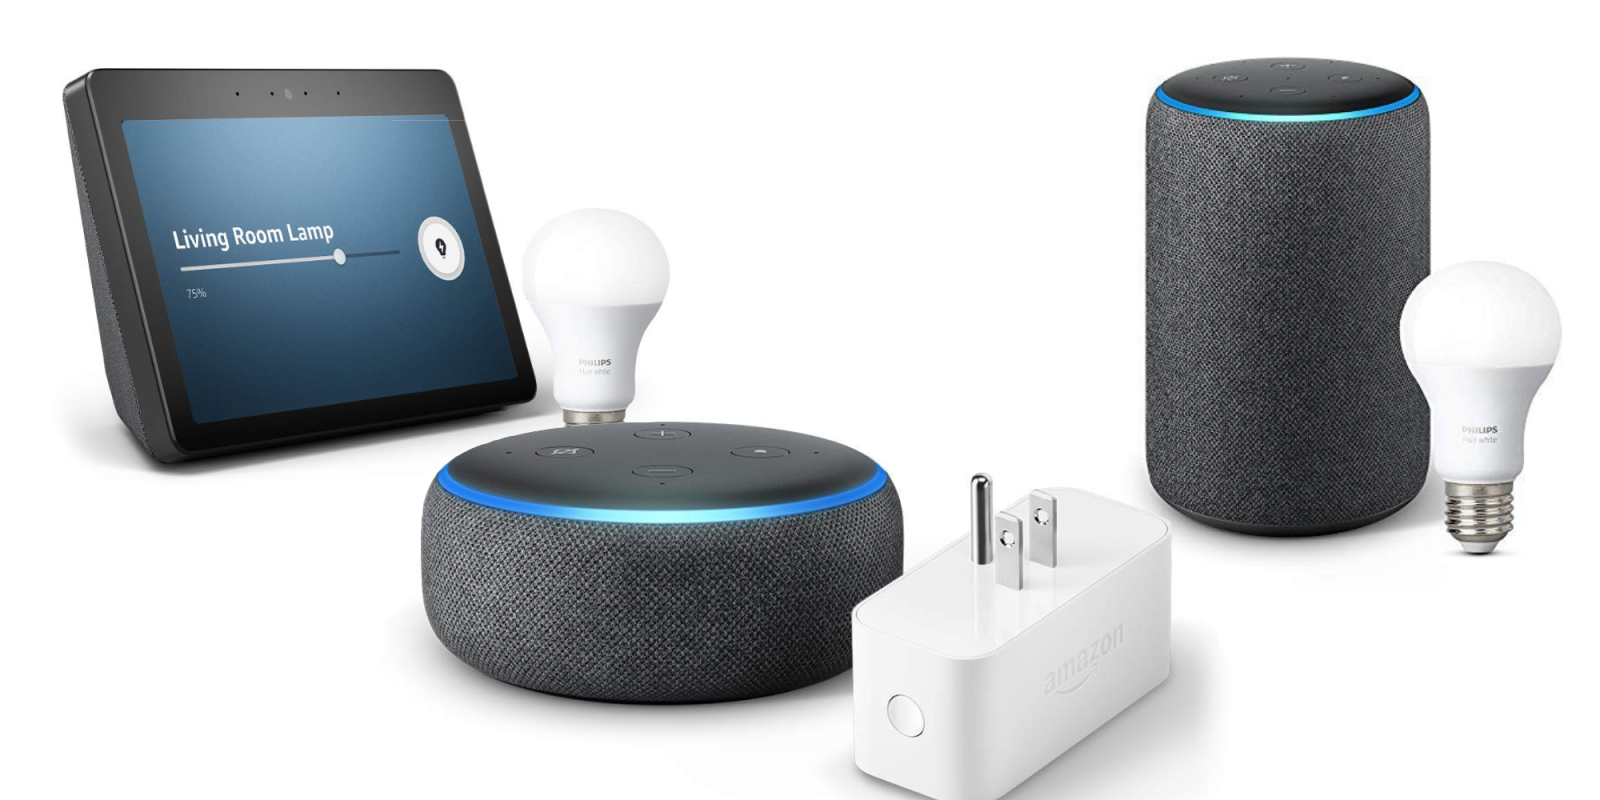 Kick start your Alexa-enabled home and pair select Echo speakers w/ smart home devices from $40